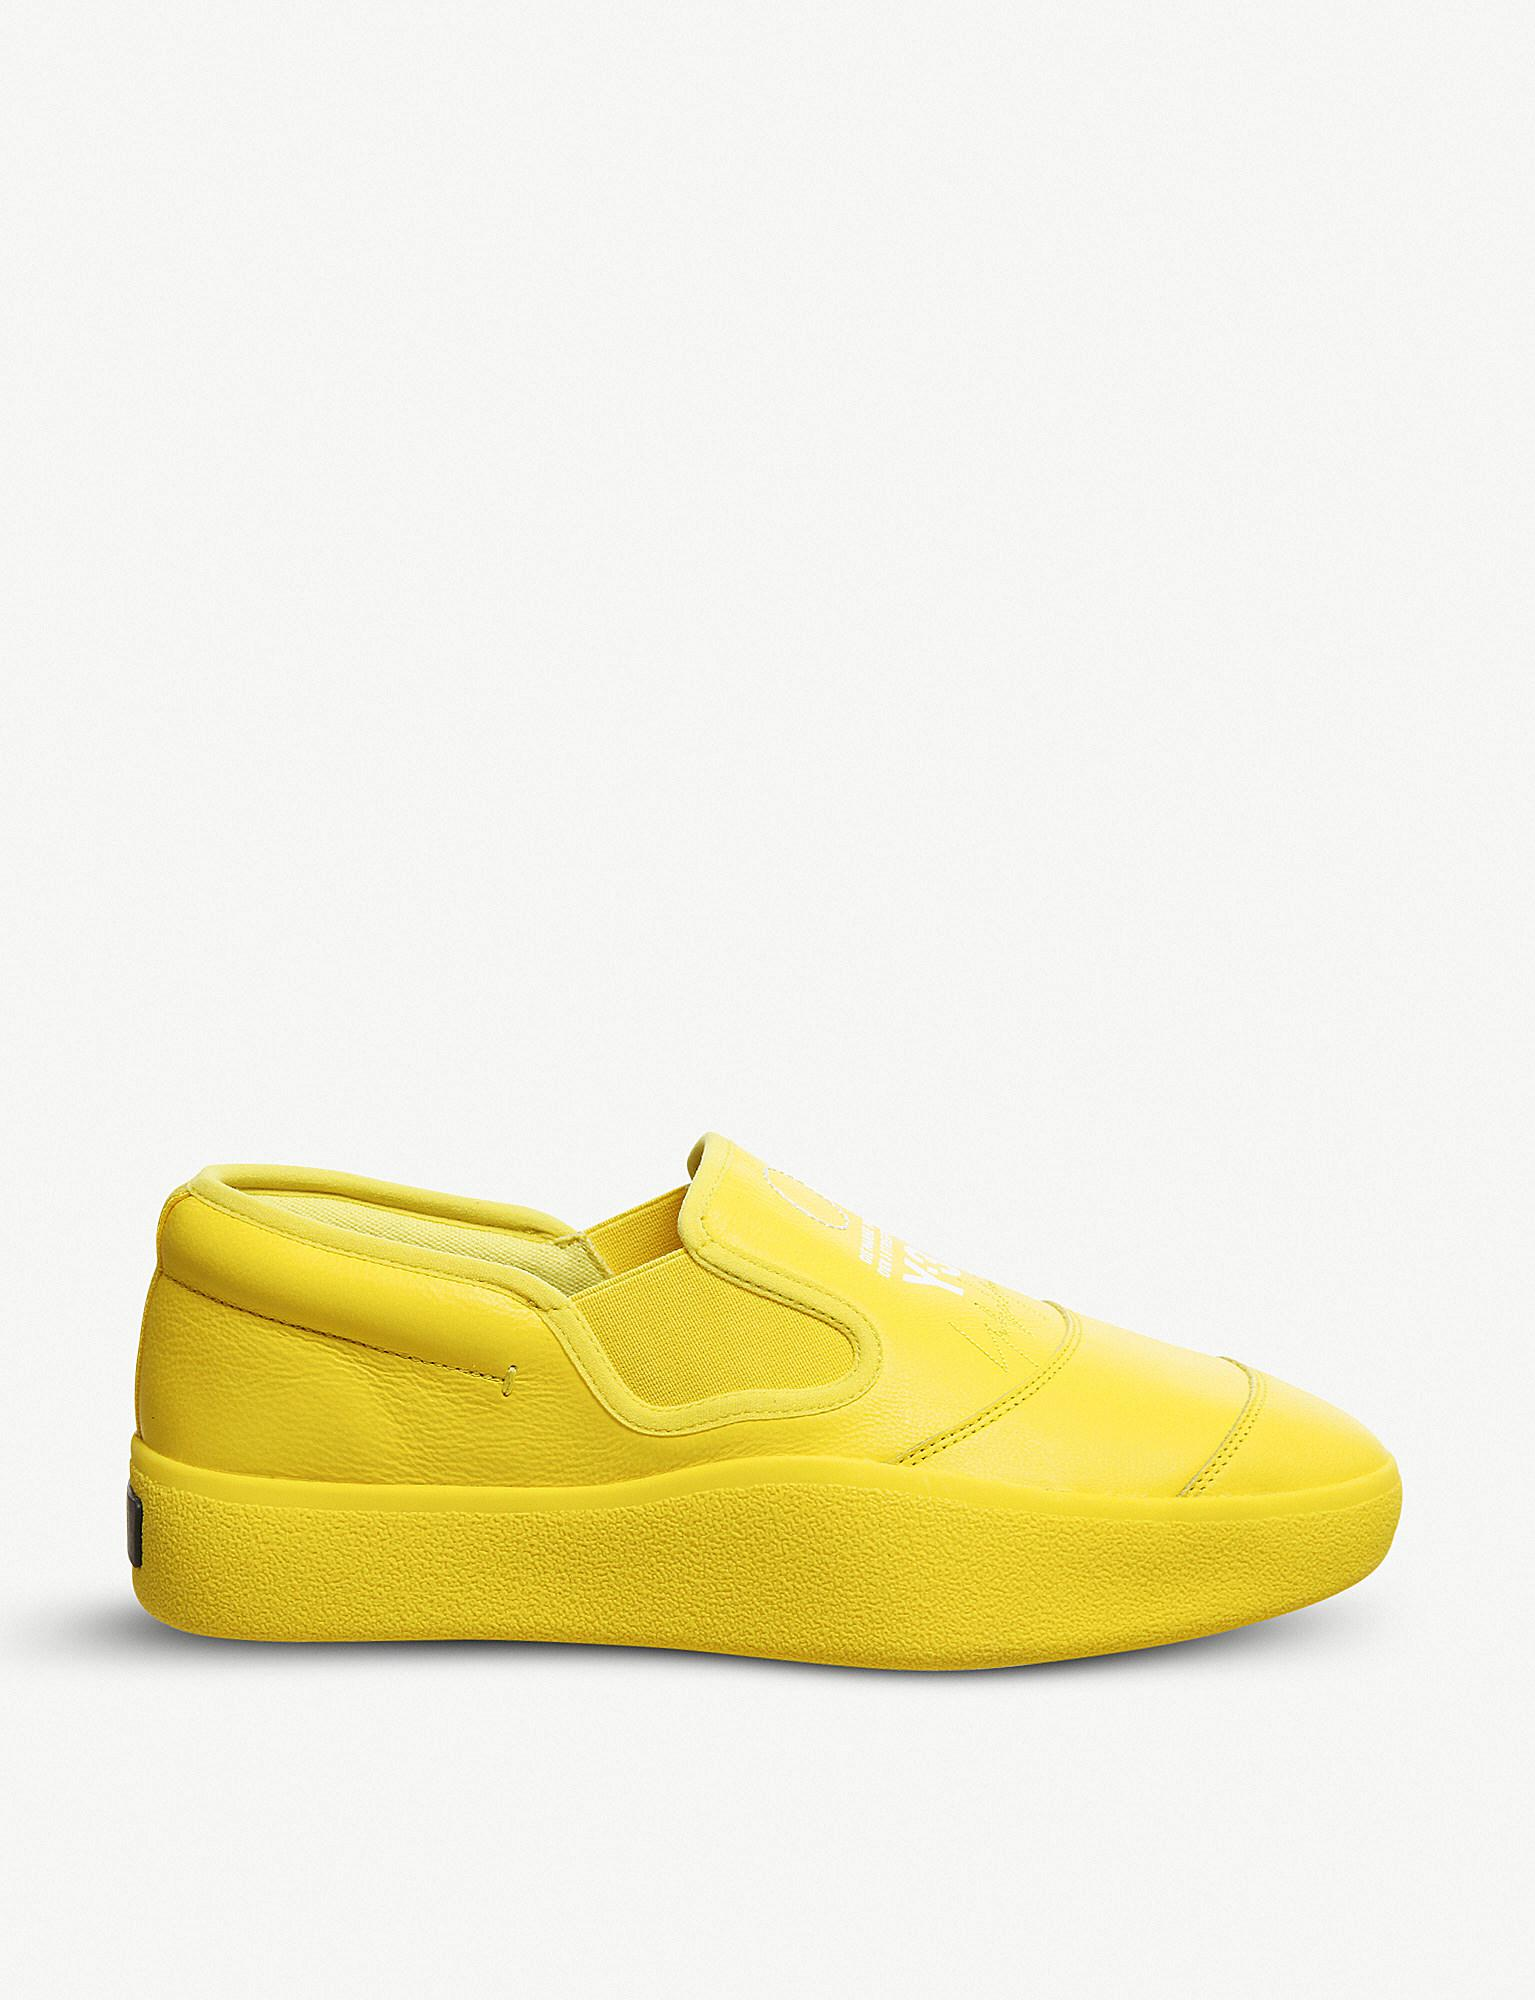 f71301c6b adidas Y-3 Tangutsu Leather Slip-on Trainers in Yellow for Men - Lyst